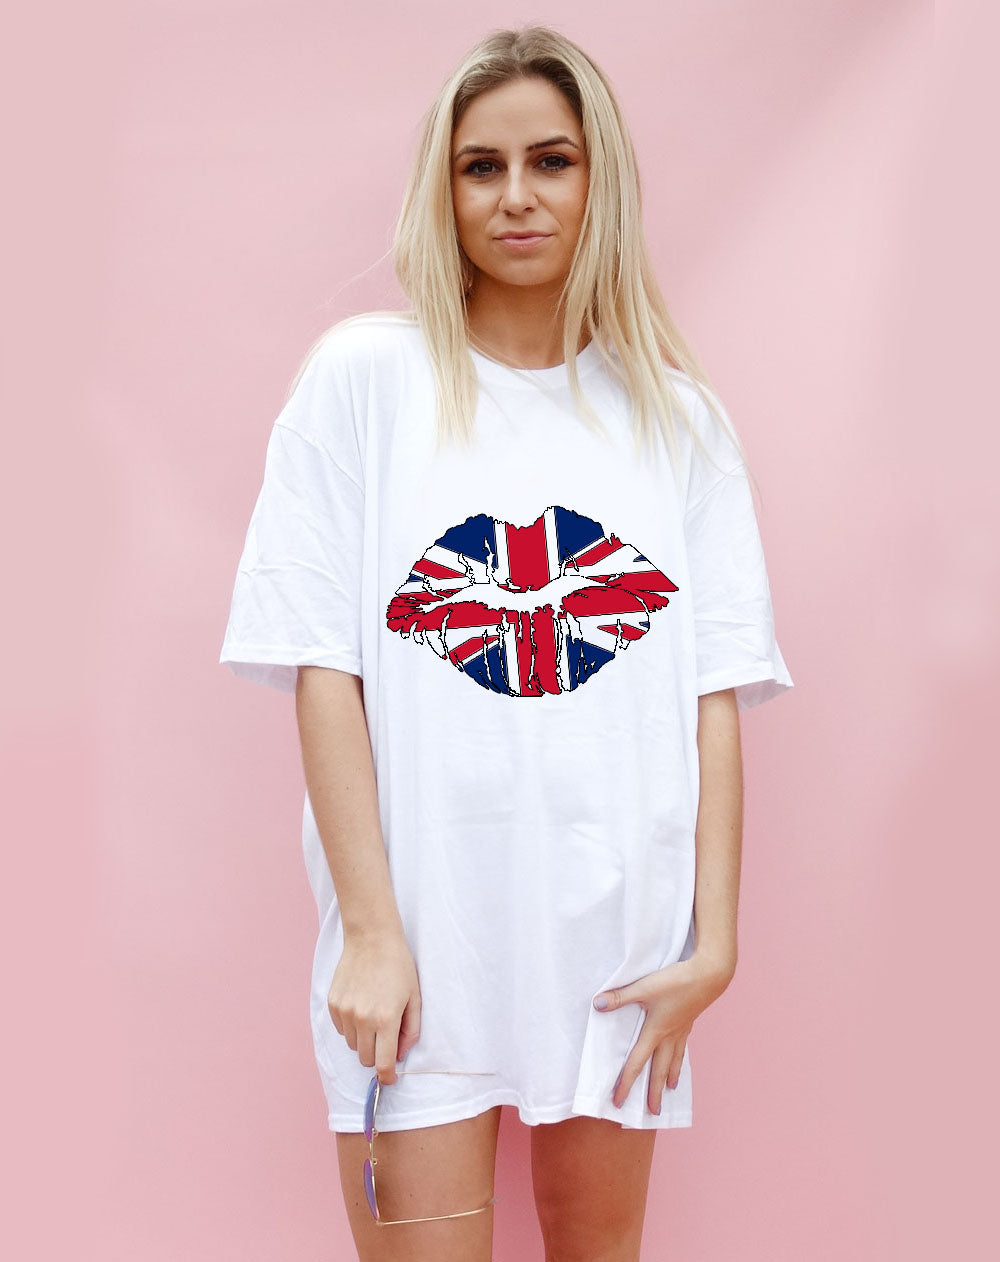 United Kiss Tshirt in White